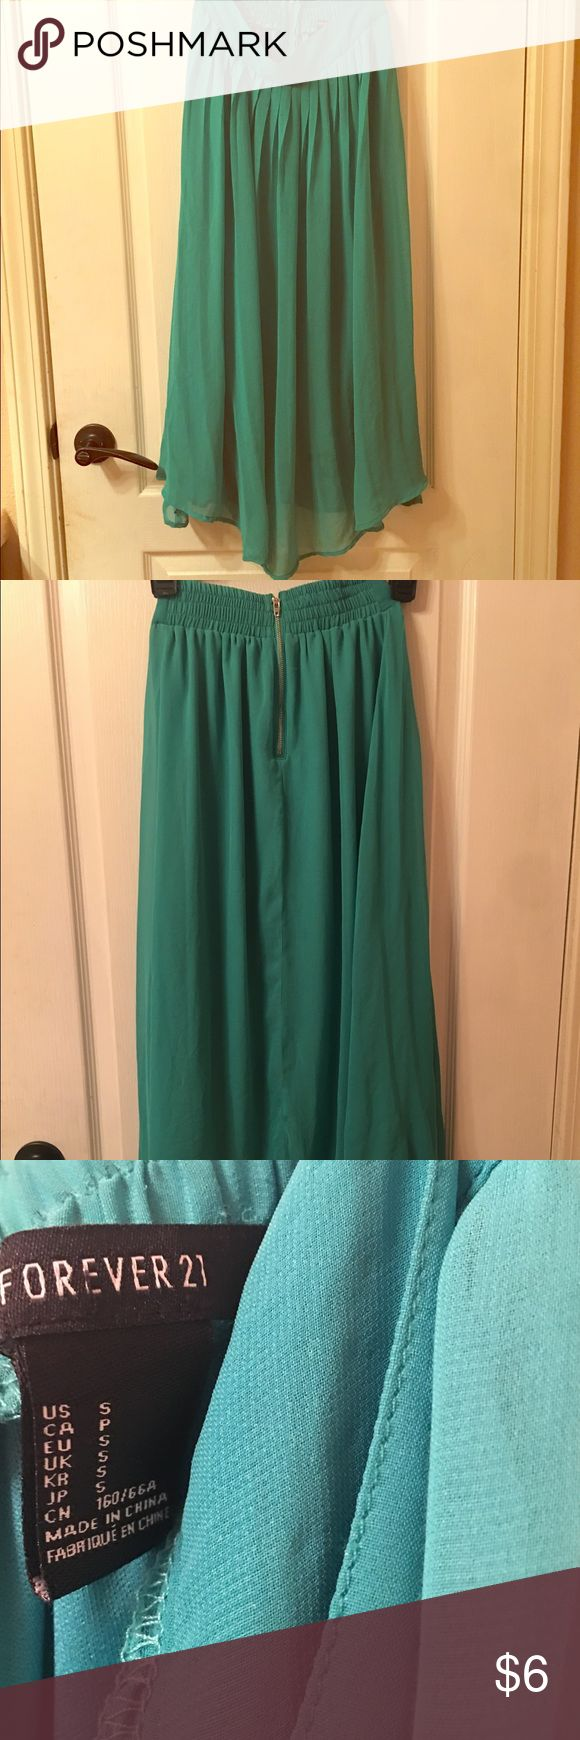 Flowy Teal Maxi Skirt Teal Maxi Skirt! Perfect for Summer :) has been worn! Size SM Forever 21 Skirts Maxi